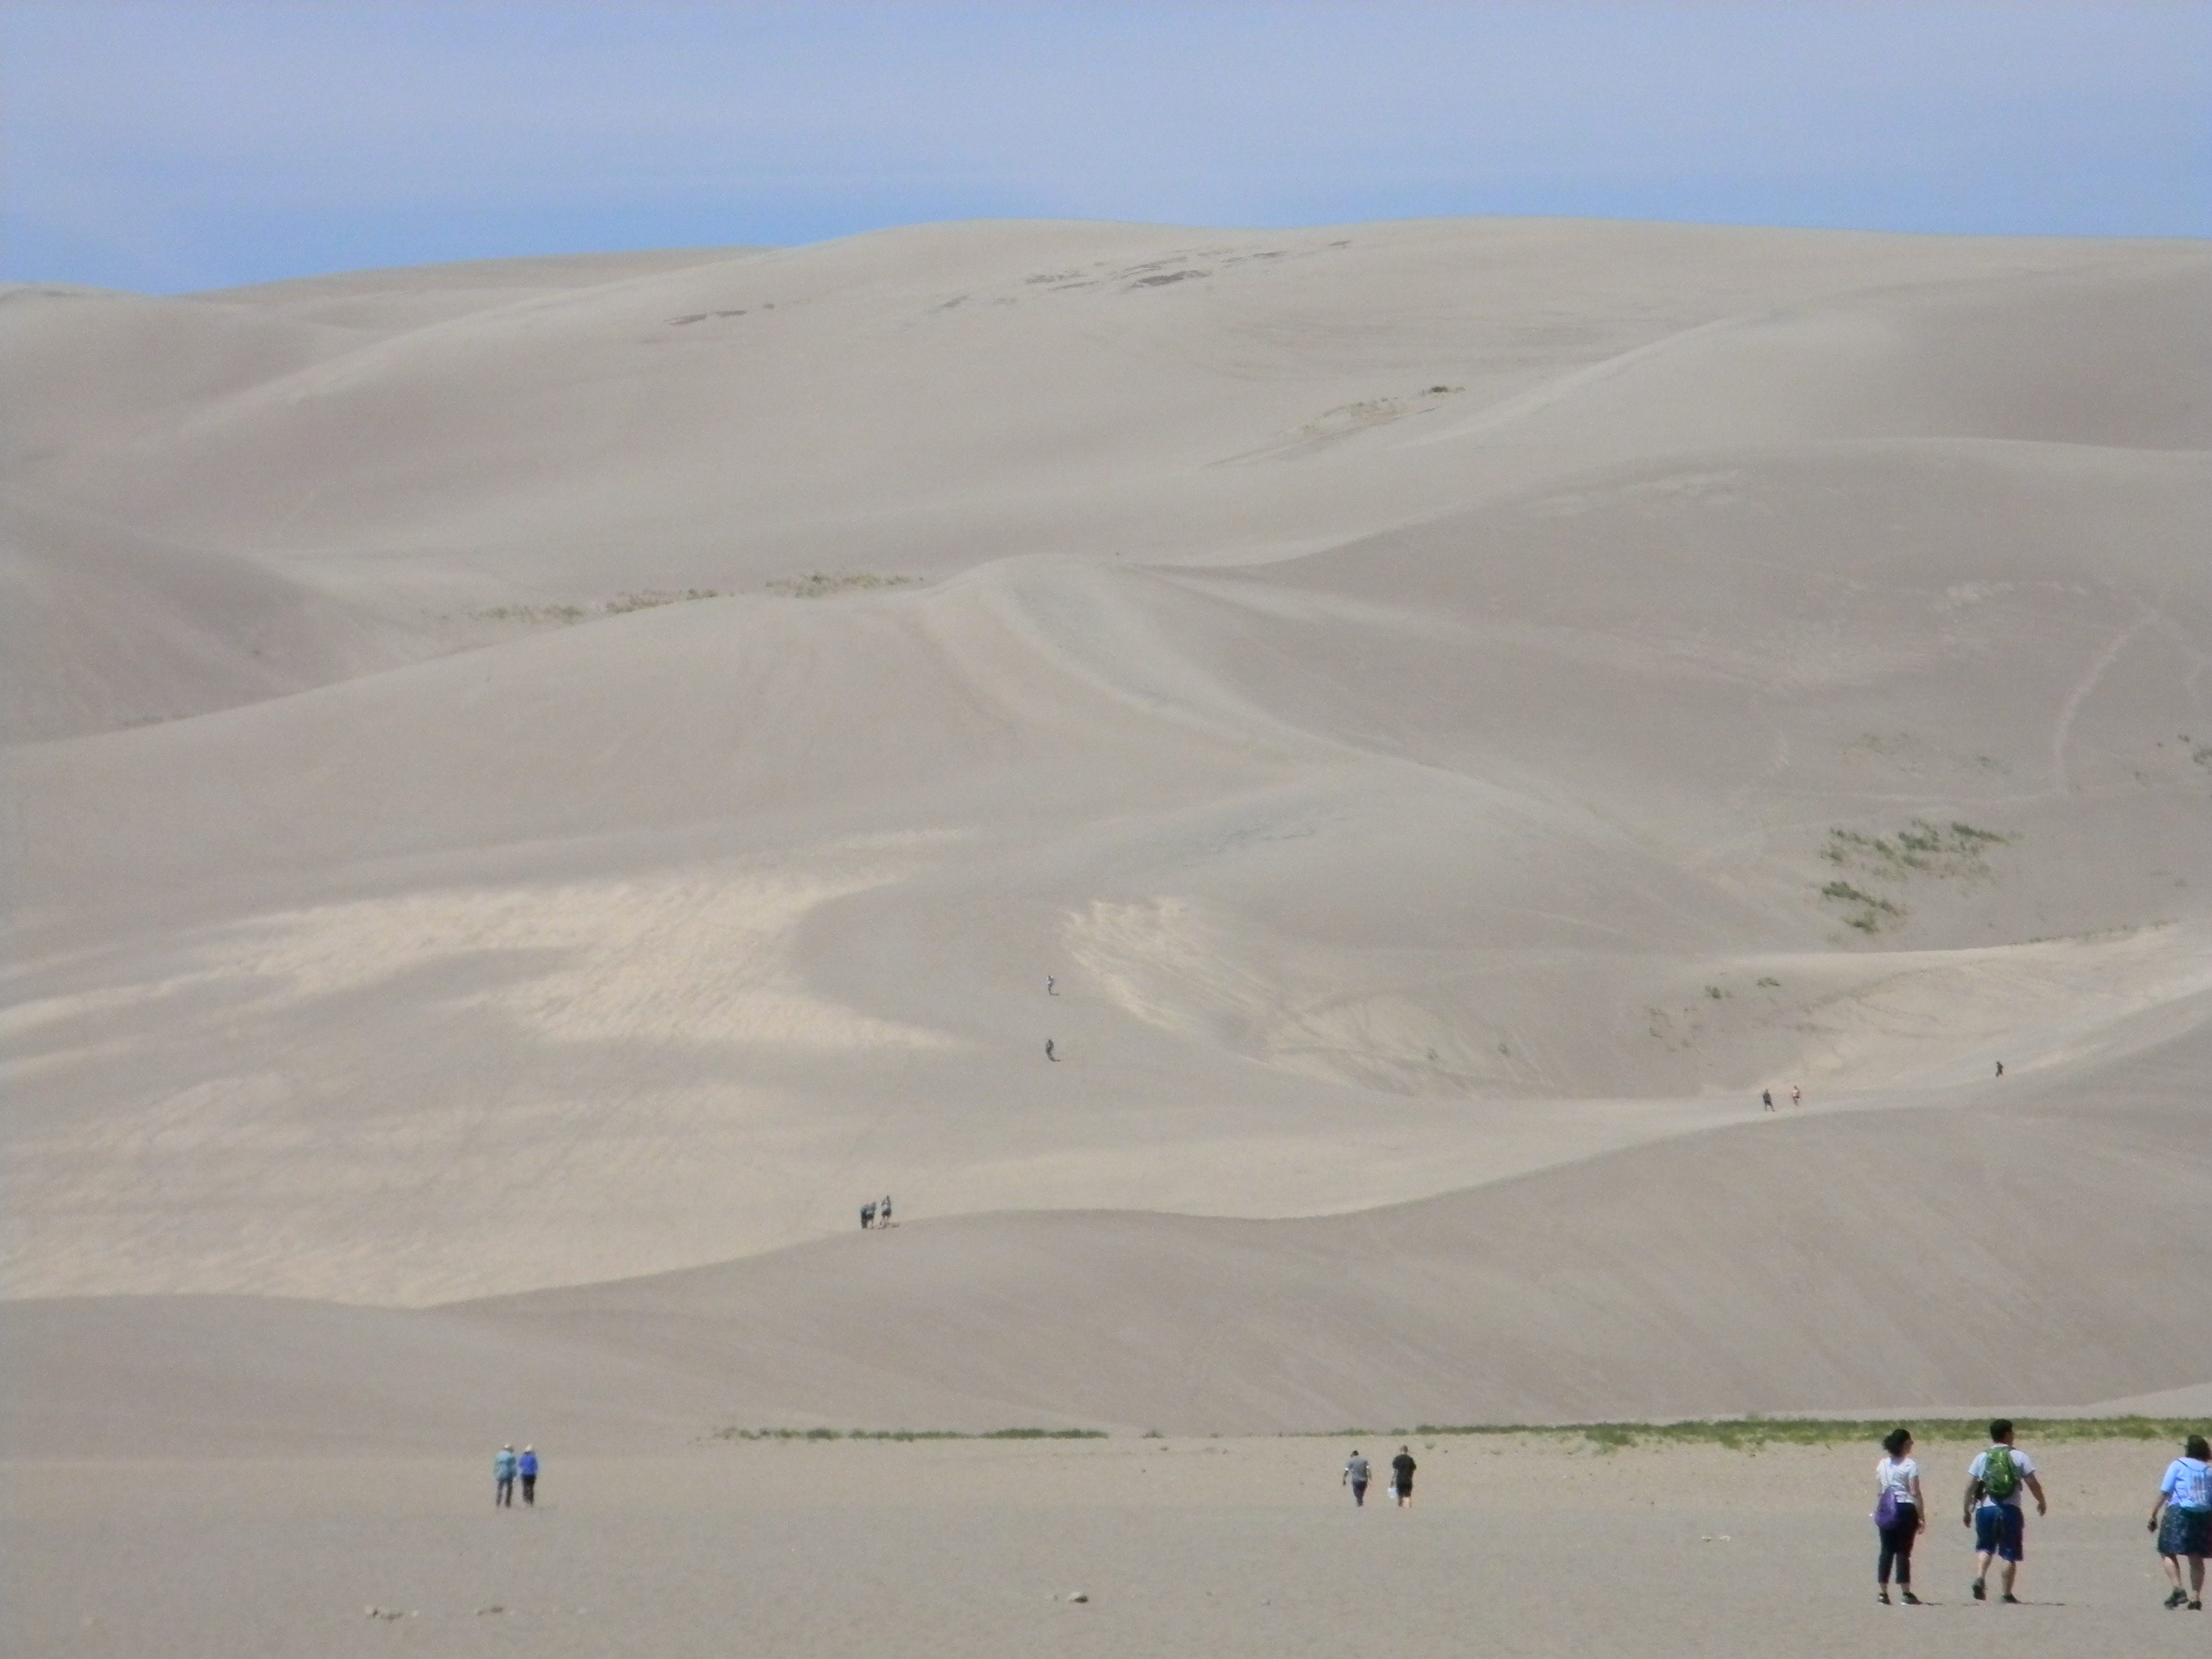 Like ants on an African anthill, climbers tackle the challenge of getting to the summit at Great Sand Dunes National Park.